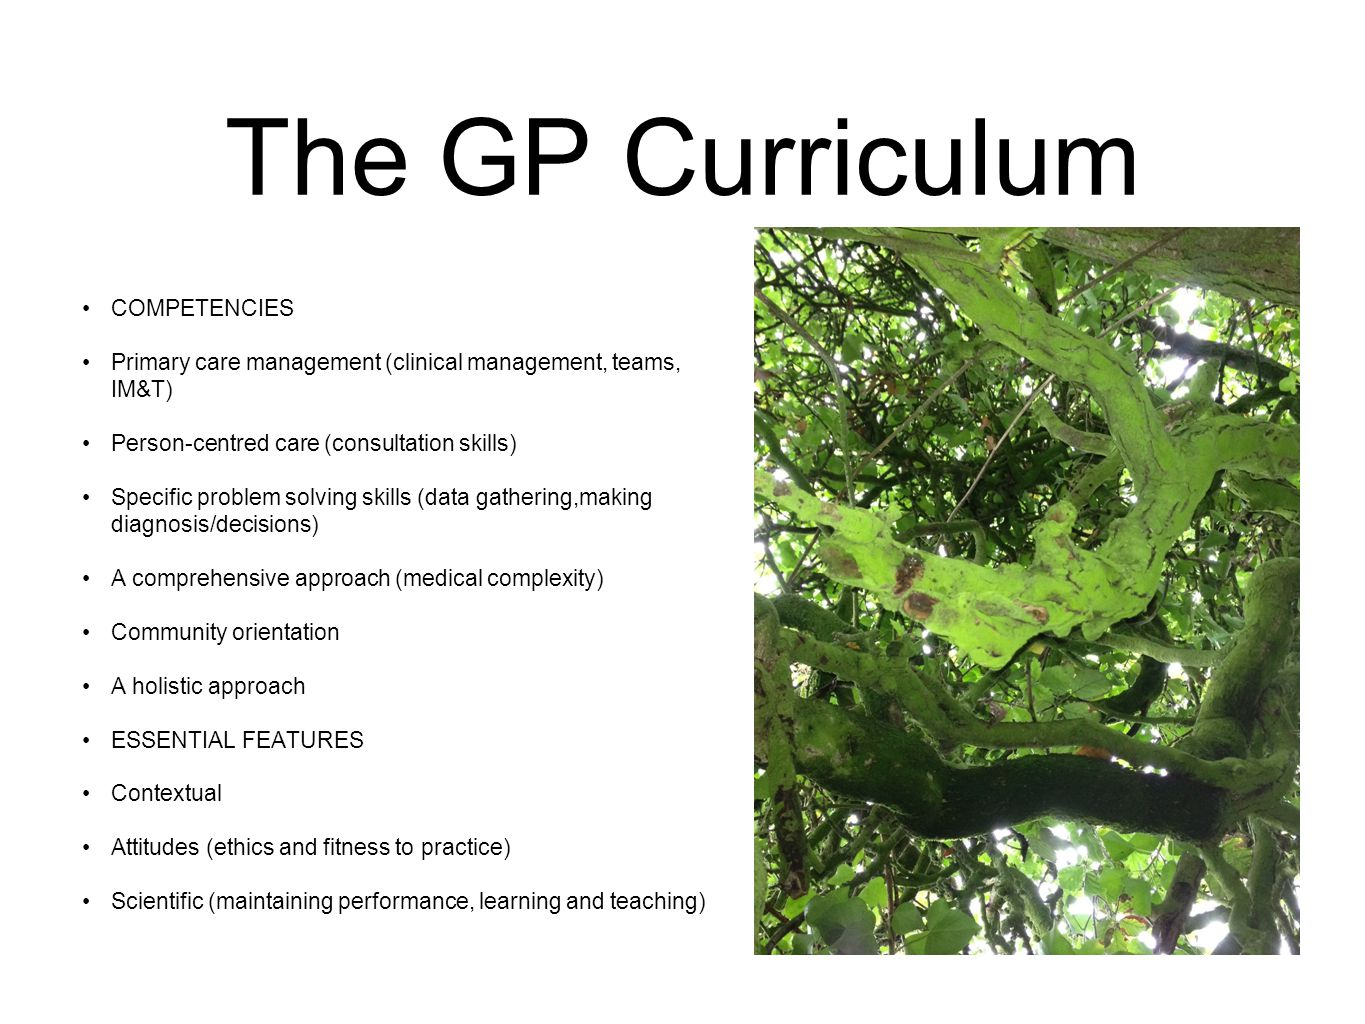 The GP Curriculum COMPETENCIES Primary care management (clinical management, teams, IM&T) Person-centred care (consultation skills) Specific problem solving skills (data gathering,making diagnosis/decisions) A comprehensive approach (medical complexity) Community orientation A holistic approach ESSENTIAL FEATURES Contextual Attitudes (ethics and fitness to practice) Scientific (maintaining performance, learning and teaching)